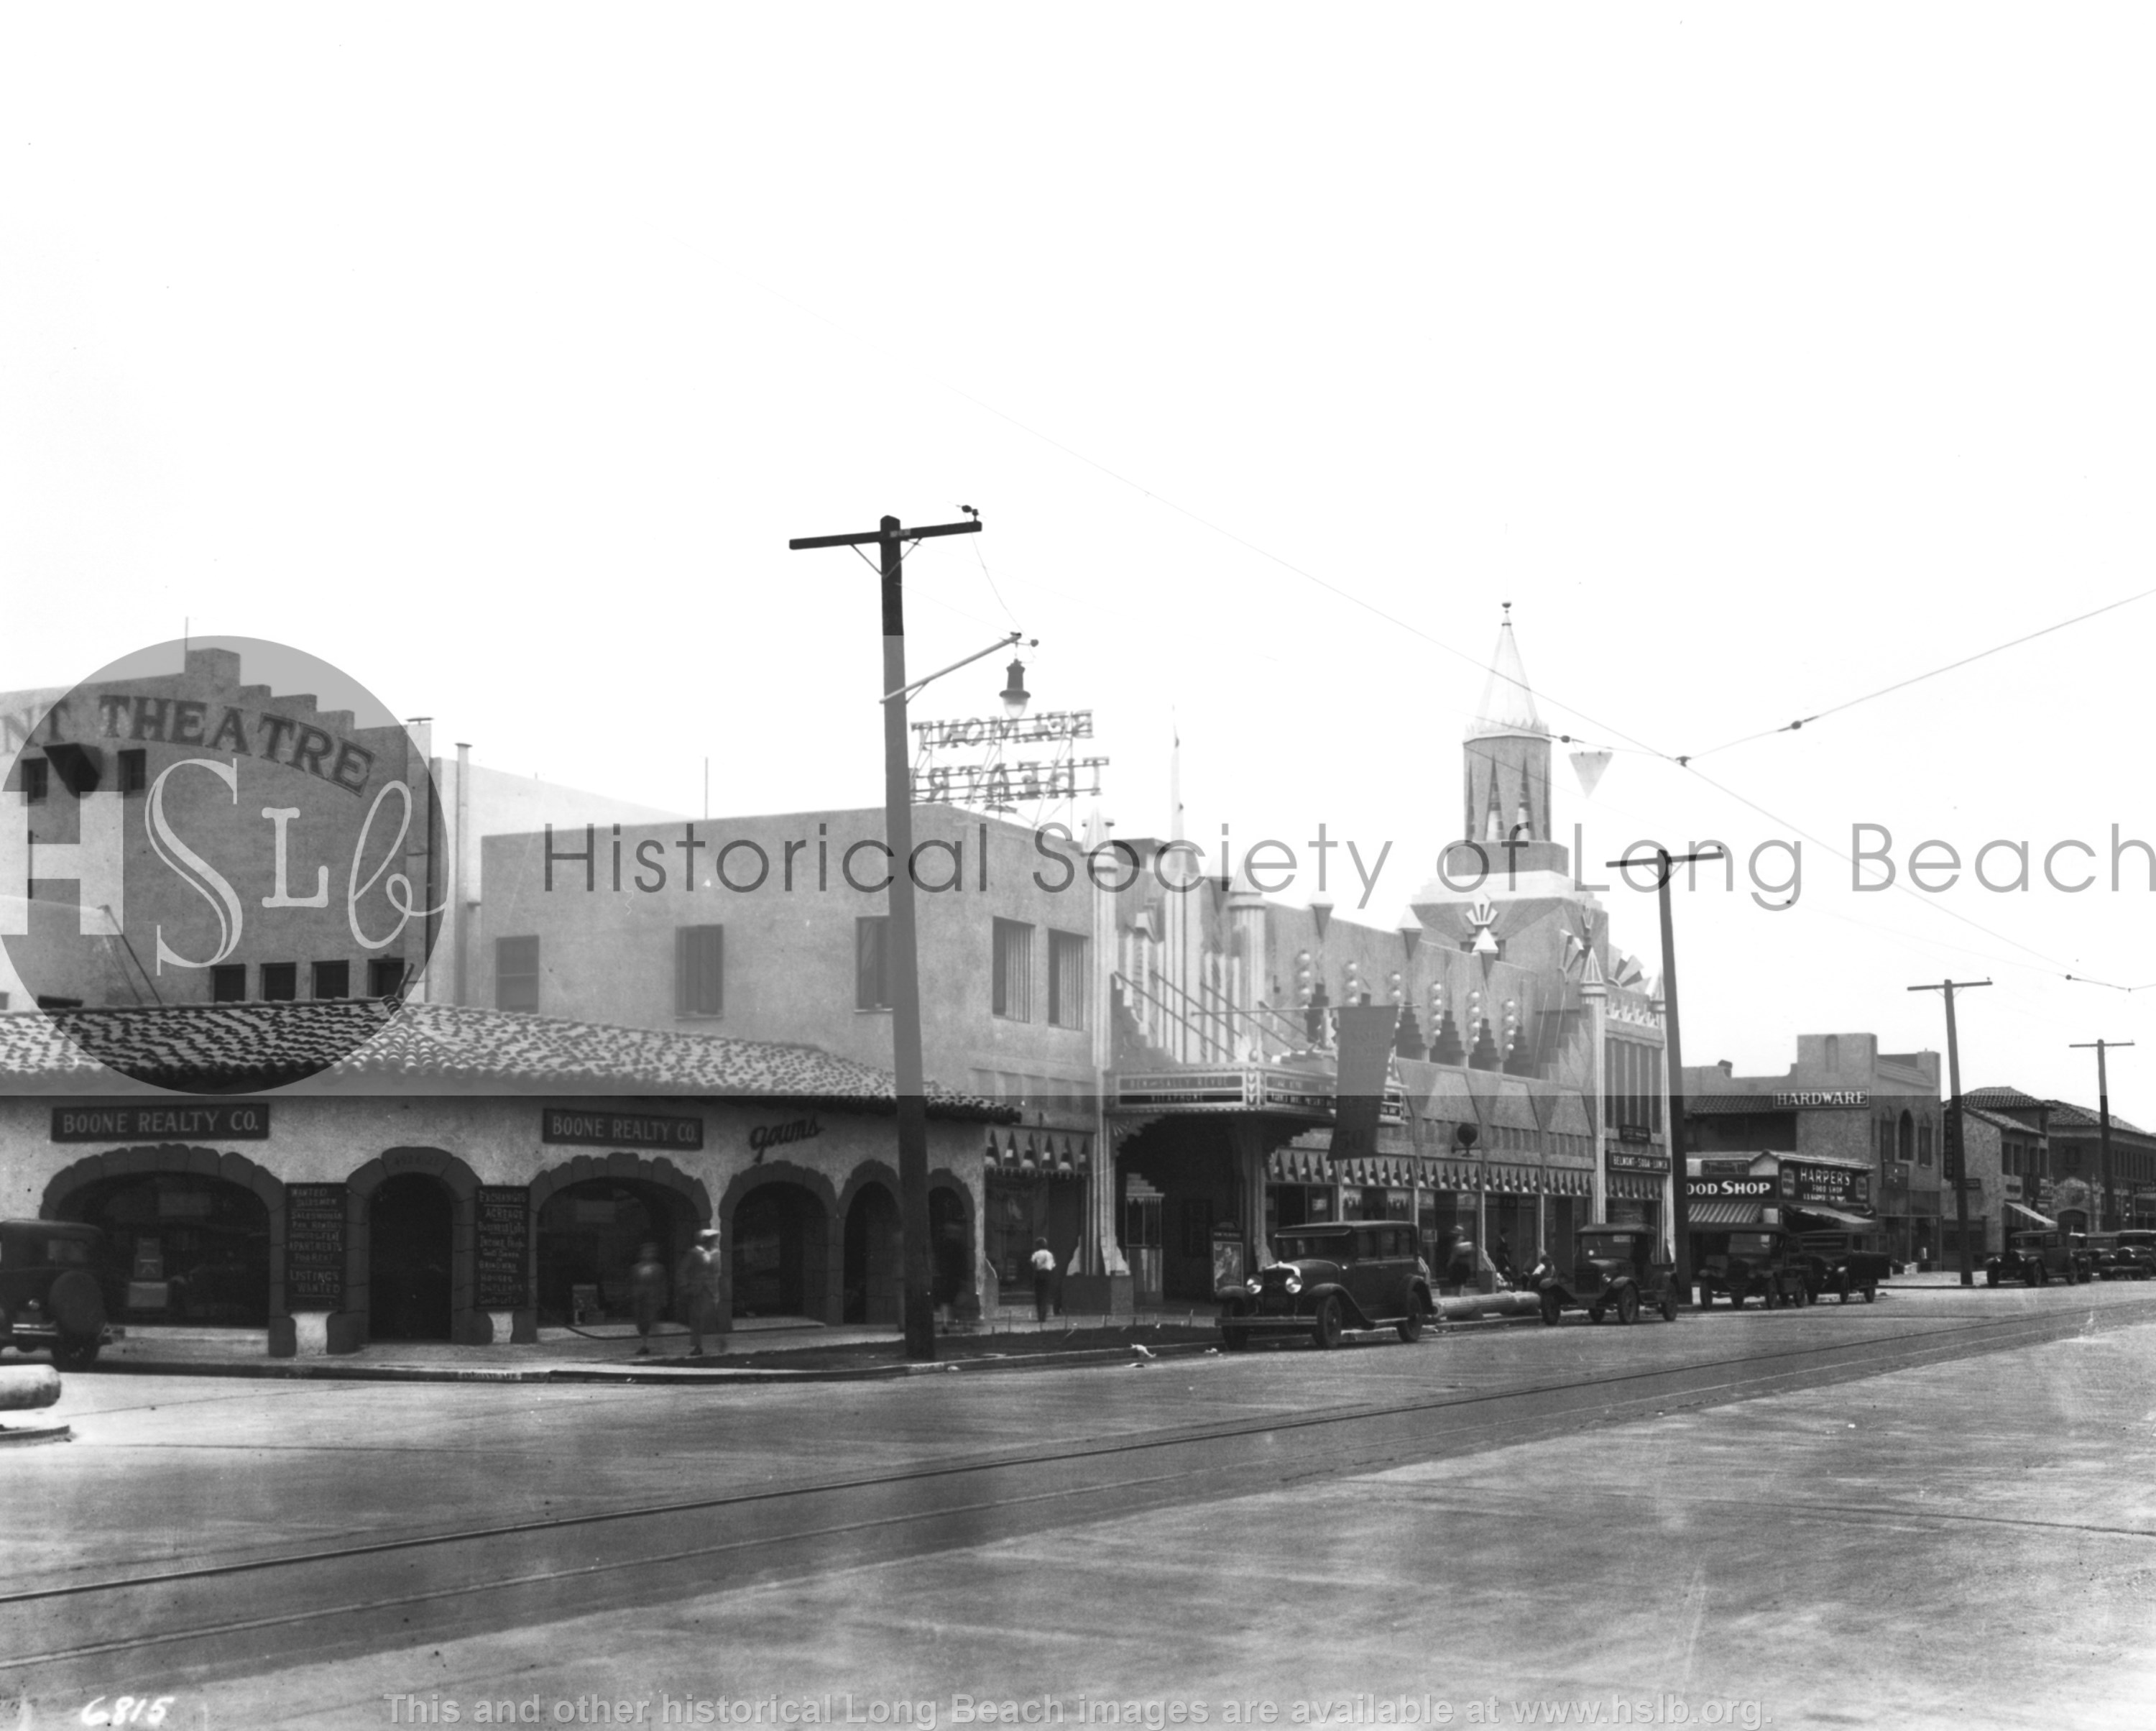 belmont shore second st 1930 historical society of long beach